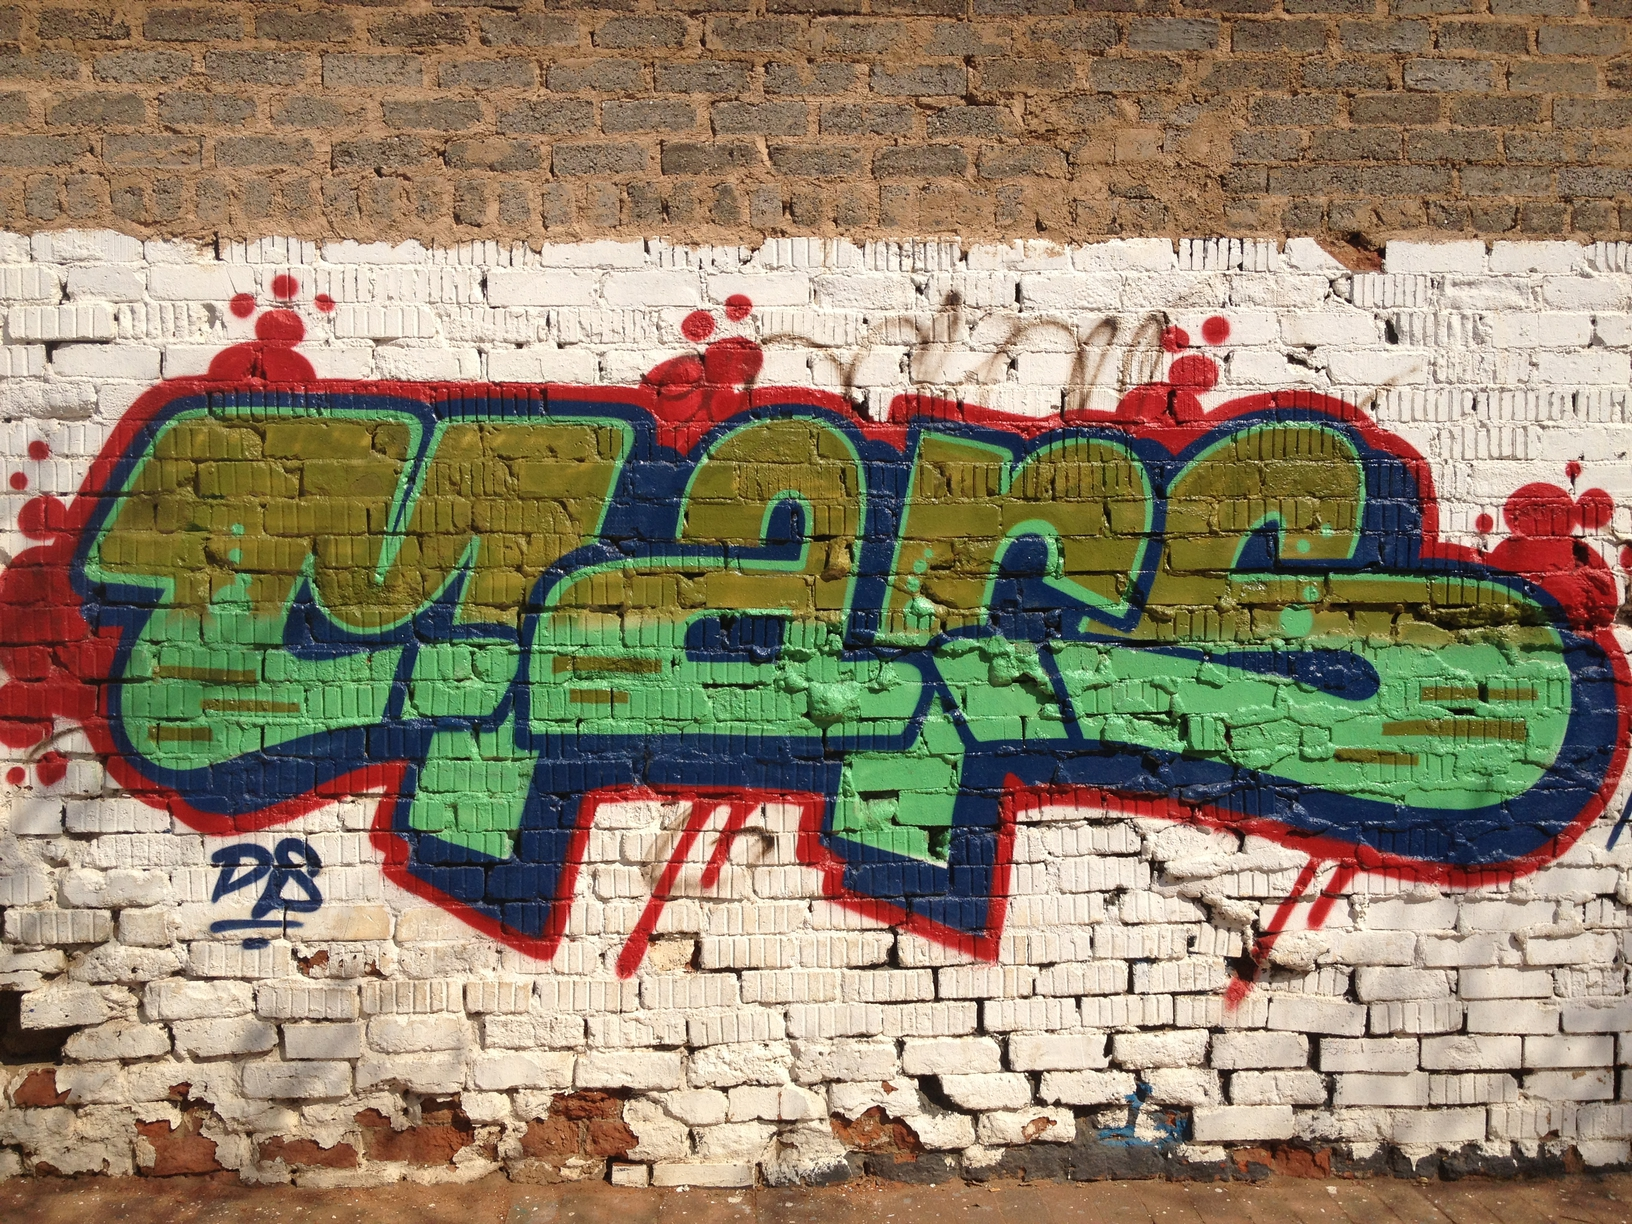 Mars is a joburg icon drive around newtown fordsburg and along barry hertzog ave and youll see his telltale signs the 25 year old graffiti artist has